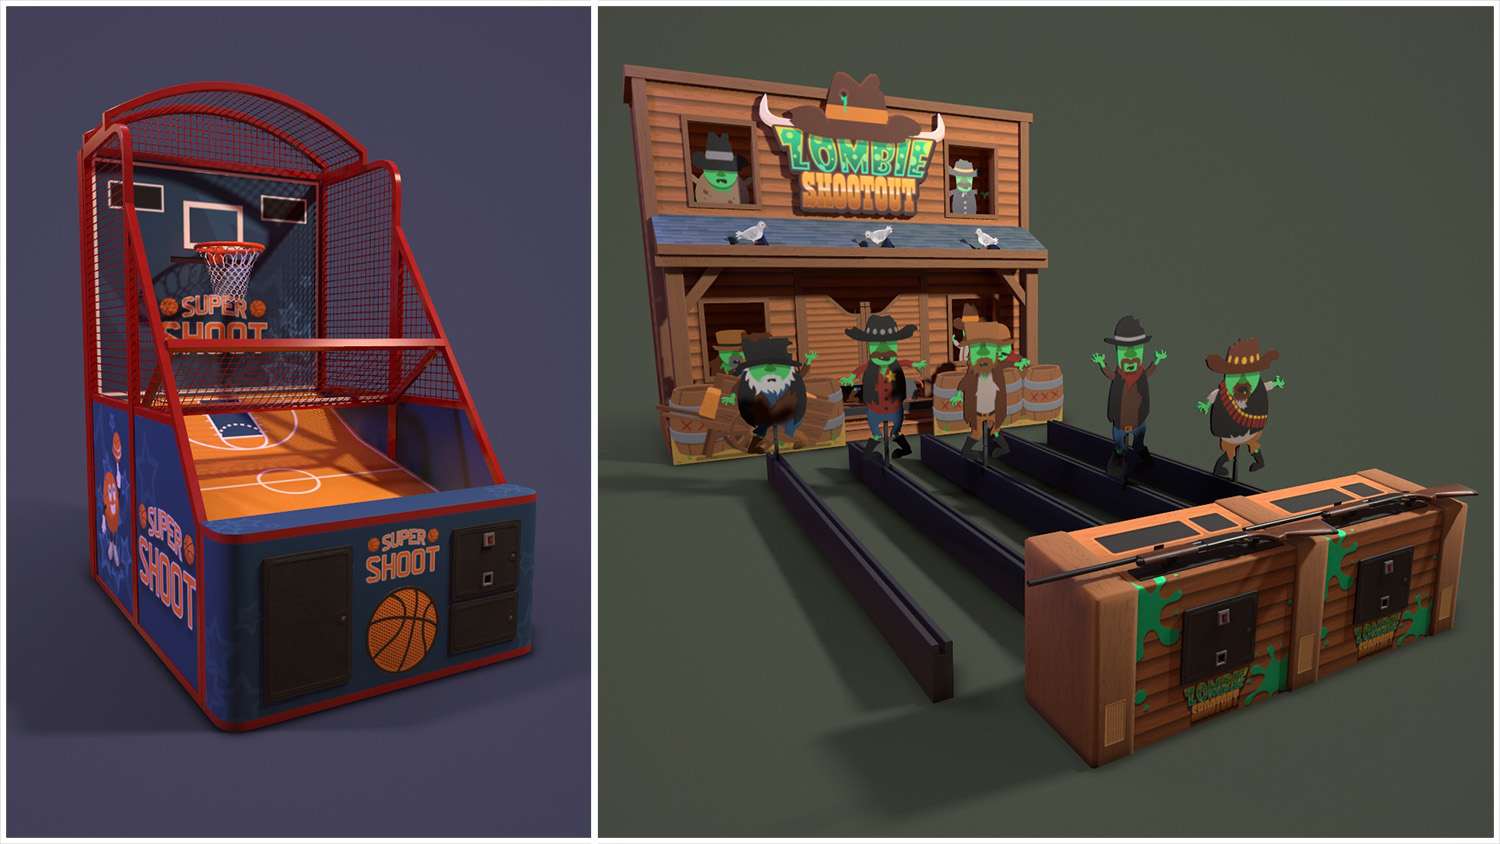 render of basketball and zombie shootout machines